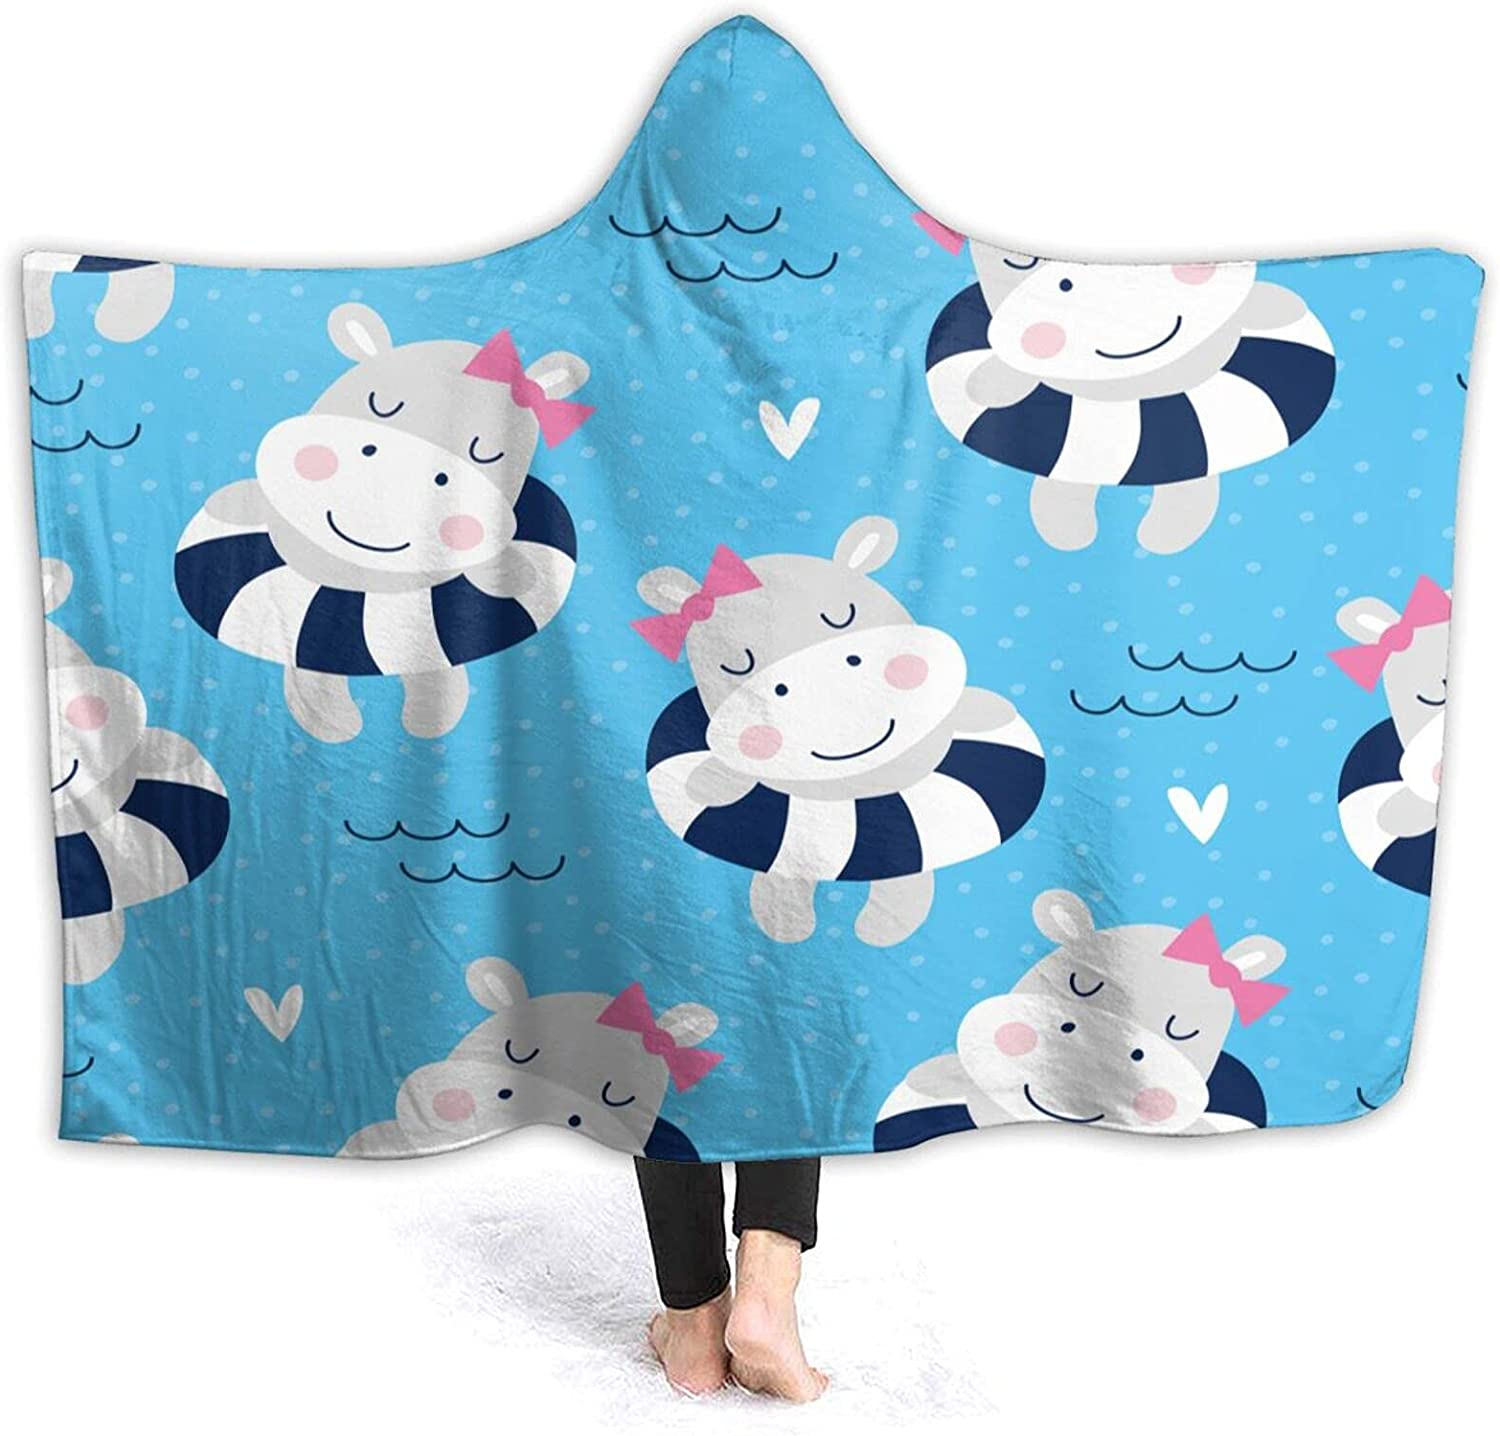 OFFicial shop Hooded Blanket Anti-Pilling Flannel Wearable Online limited product Throw Blank